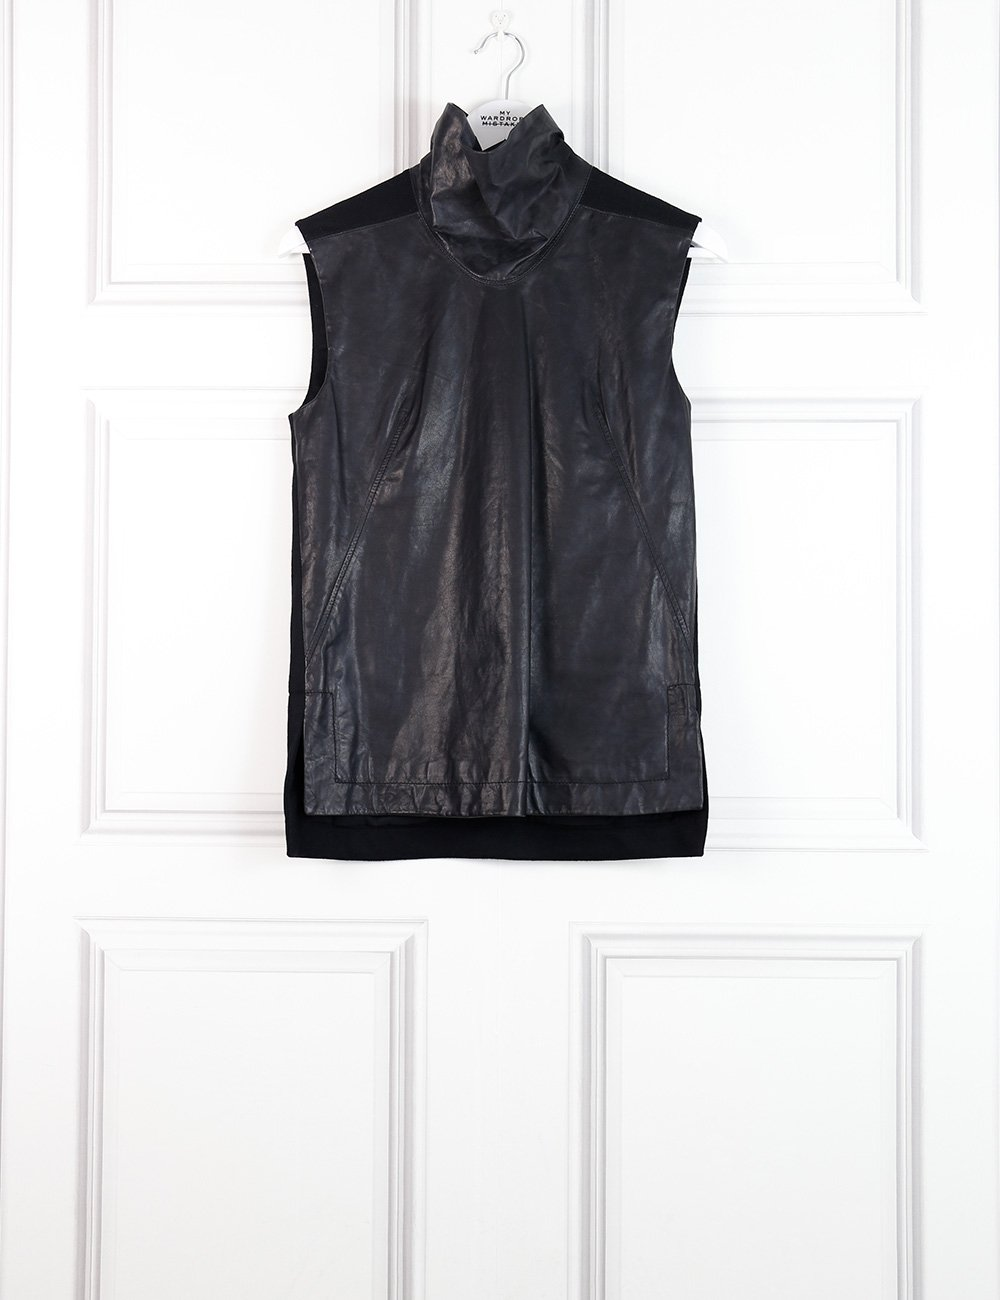 Helmut Lang black sleeveless leather turtleneck top 8UK- My Wardrobe Mistakes